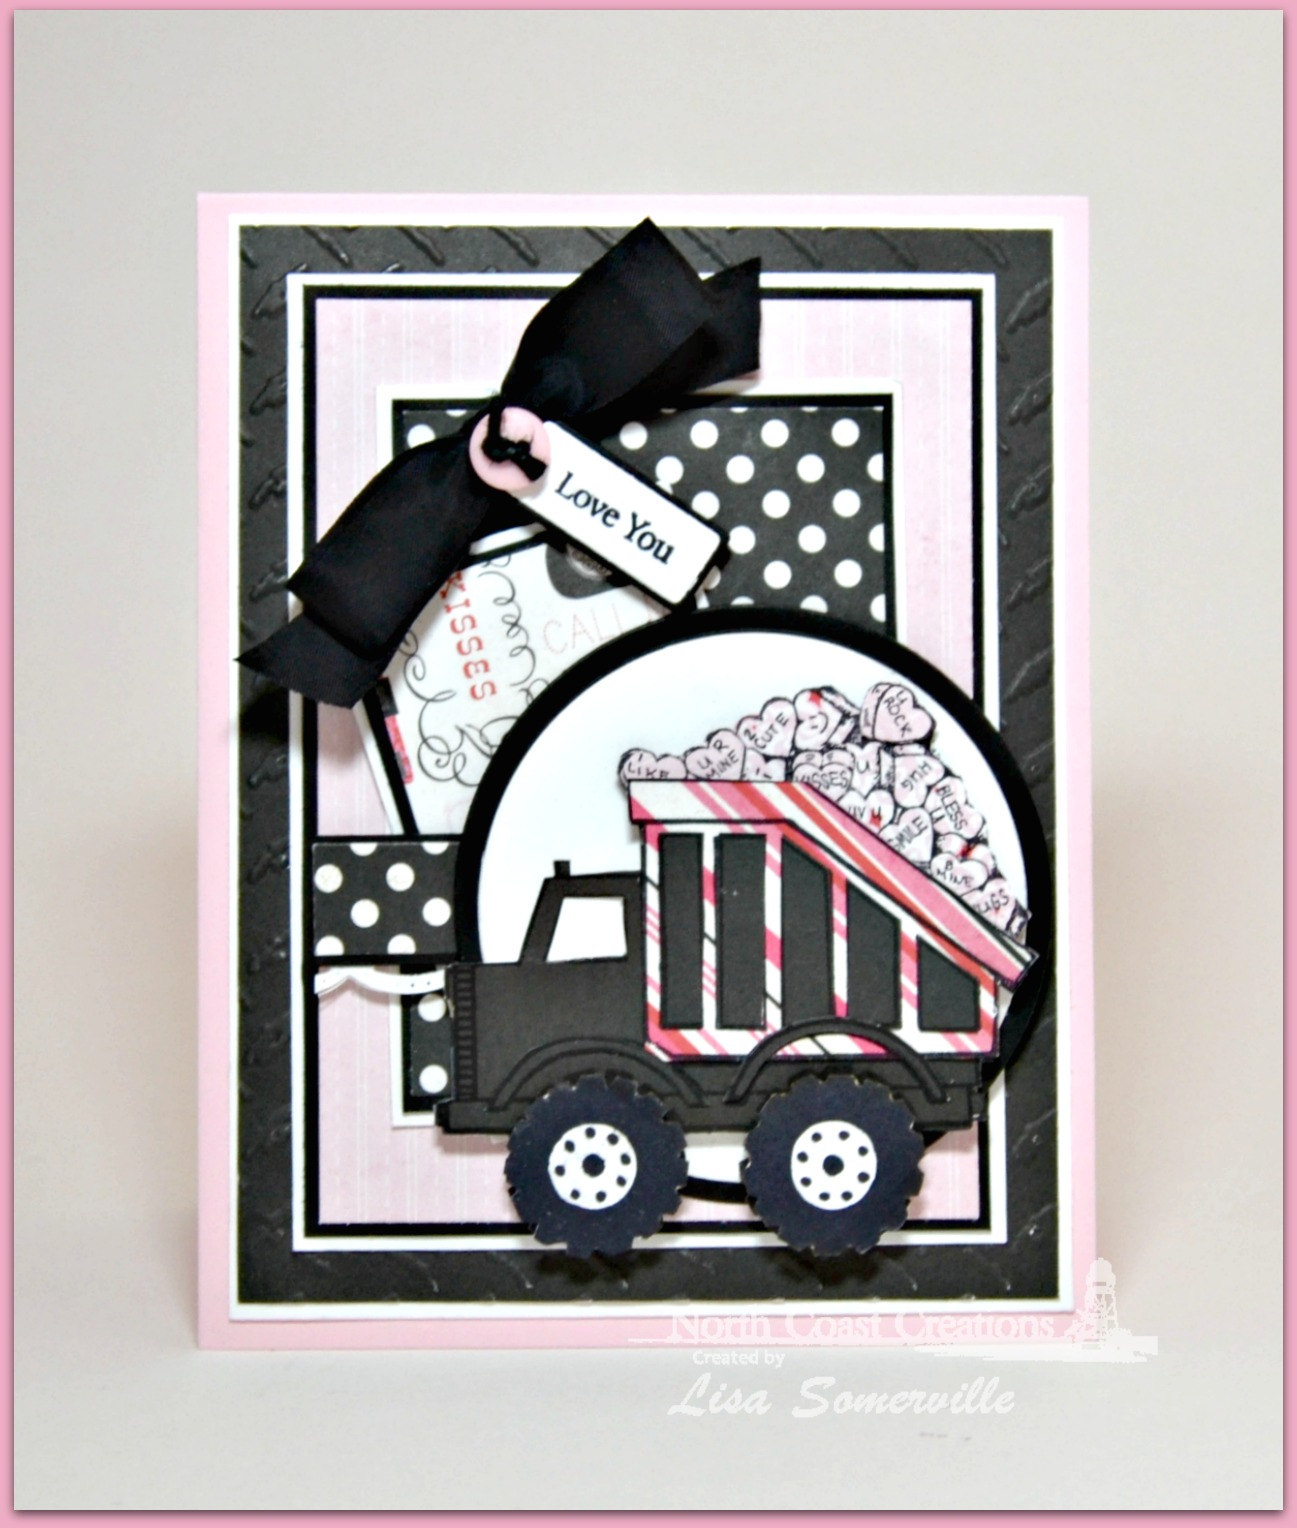 Stamps - North Coast Creations Dump Truck Birthday, Our Daily Bread Designs Mini Tag Sentiments, Our Daily Bread Designs Canning Jar Fillers, Our Daily Bread Designs Custom Mini Tags Dies, Our Daily Bread Designs Custom Matting Circles Dies, Our Daily Bread Designs Custom Circle Ornaments Dies, Our Daily Bread Designs Custom Beautiful Borders Dies